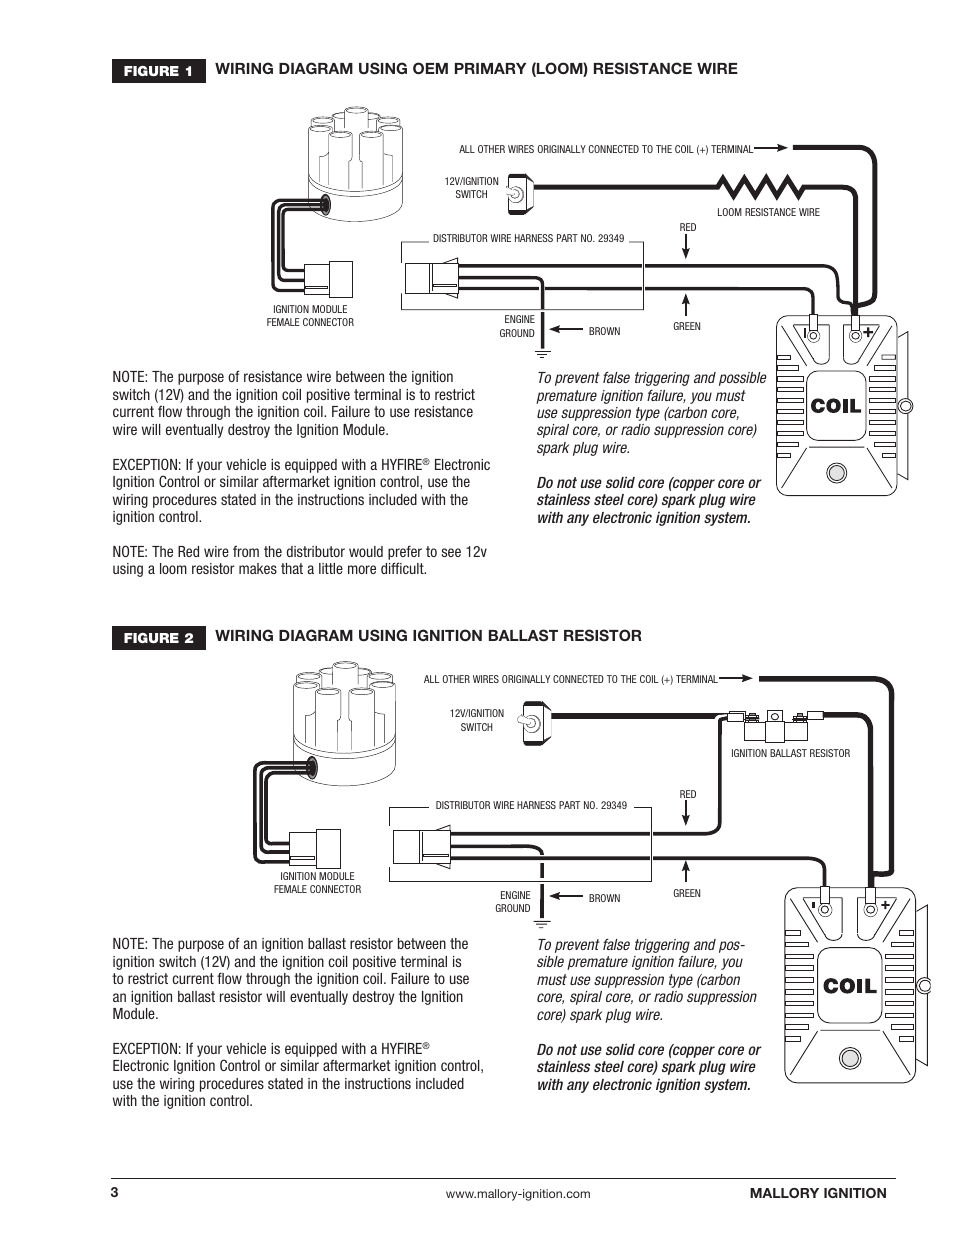 Mallory Comp 9000 Wiring Diagram Points To Manual E Books P Www Manualsdir Com Manuals 337315 3 Ignitimallory 18